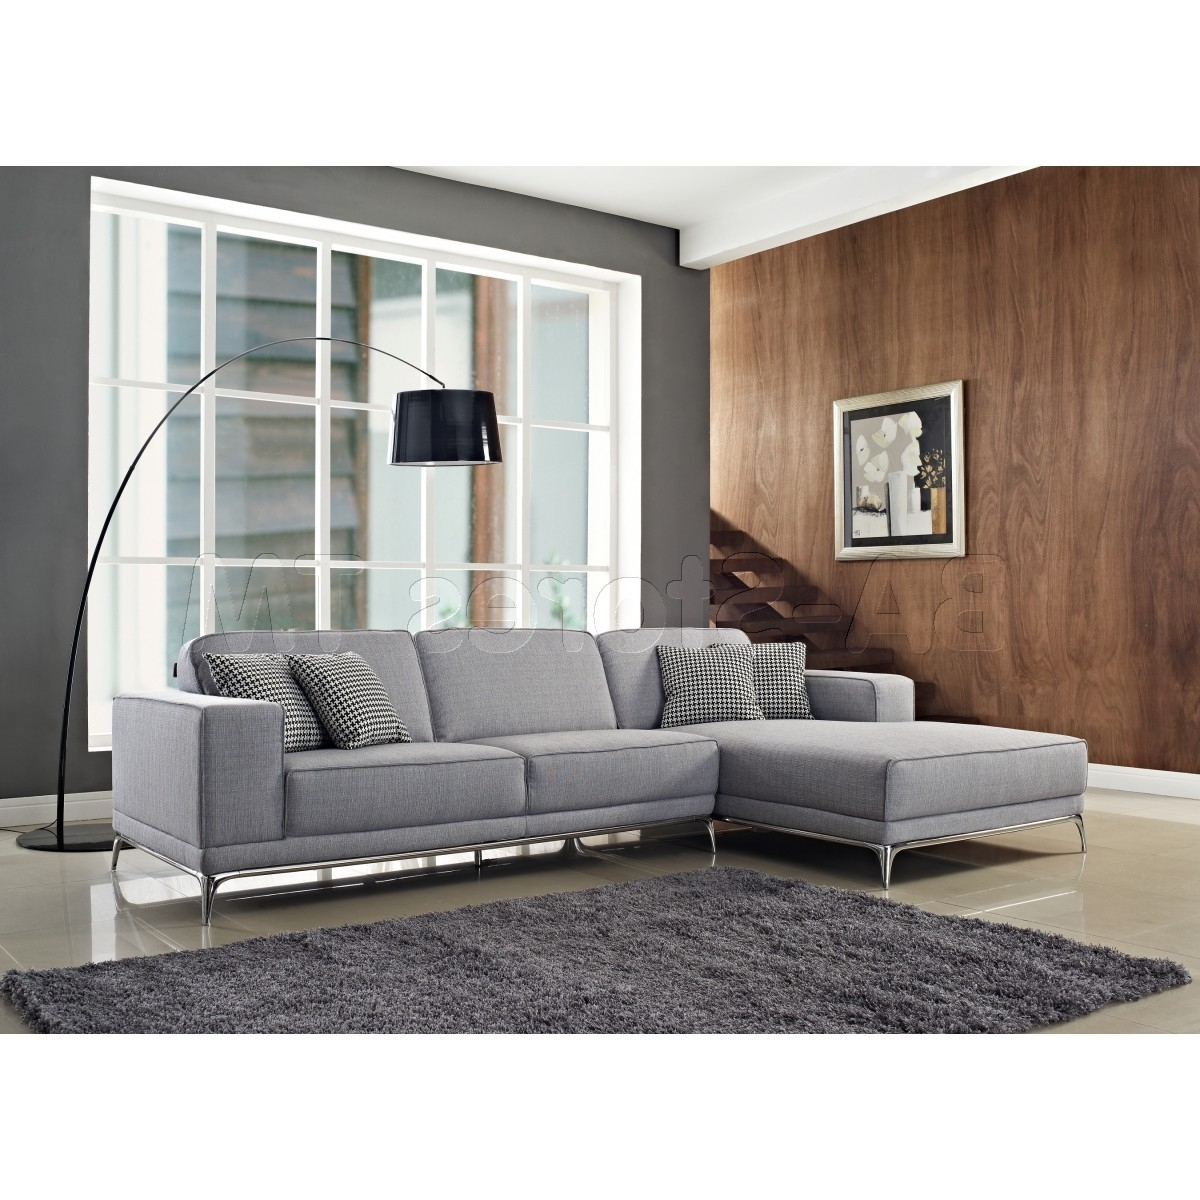 Most Recent Light Grey Sectional Sofas In Agata Sectional Sofa (View 4 of 15)